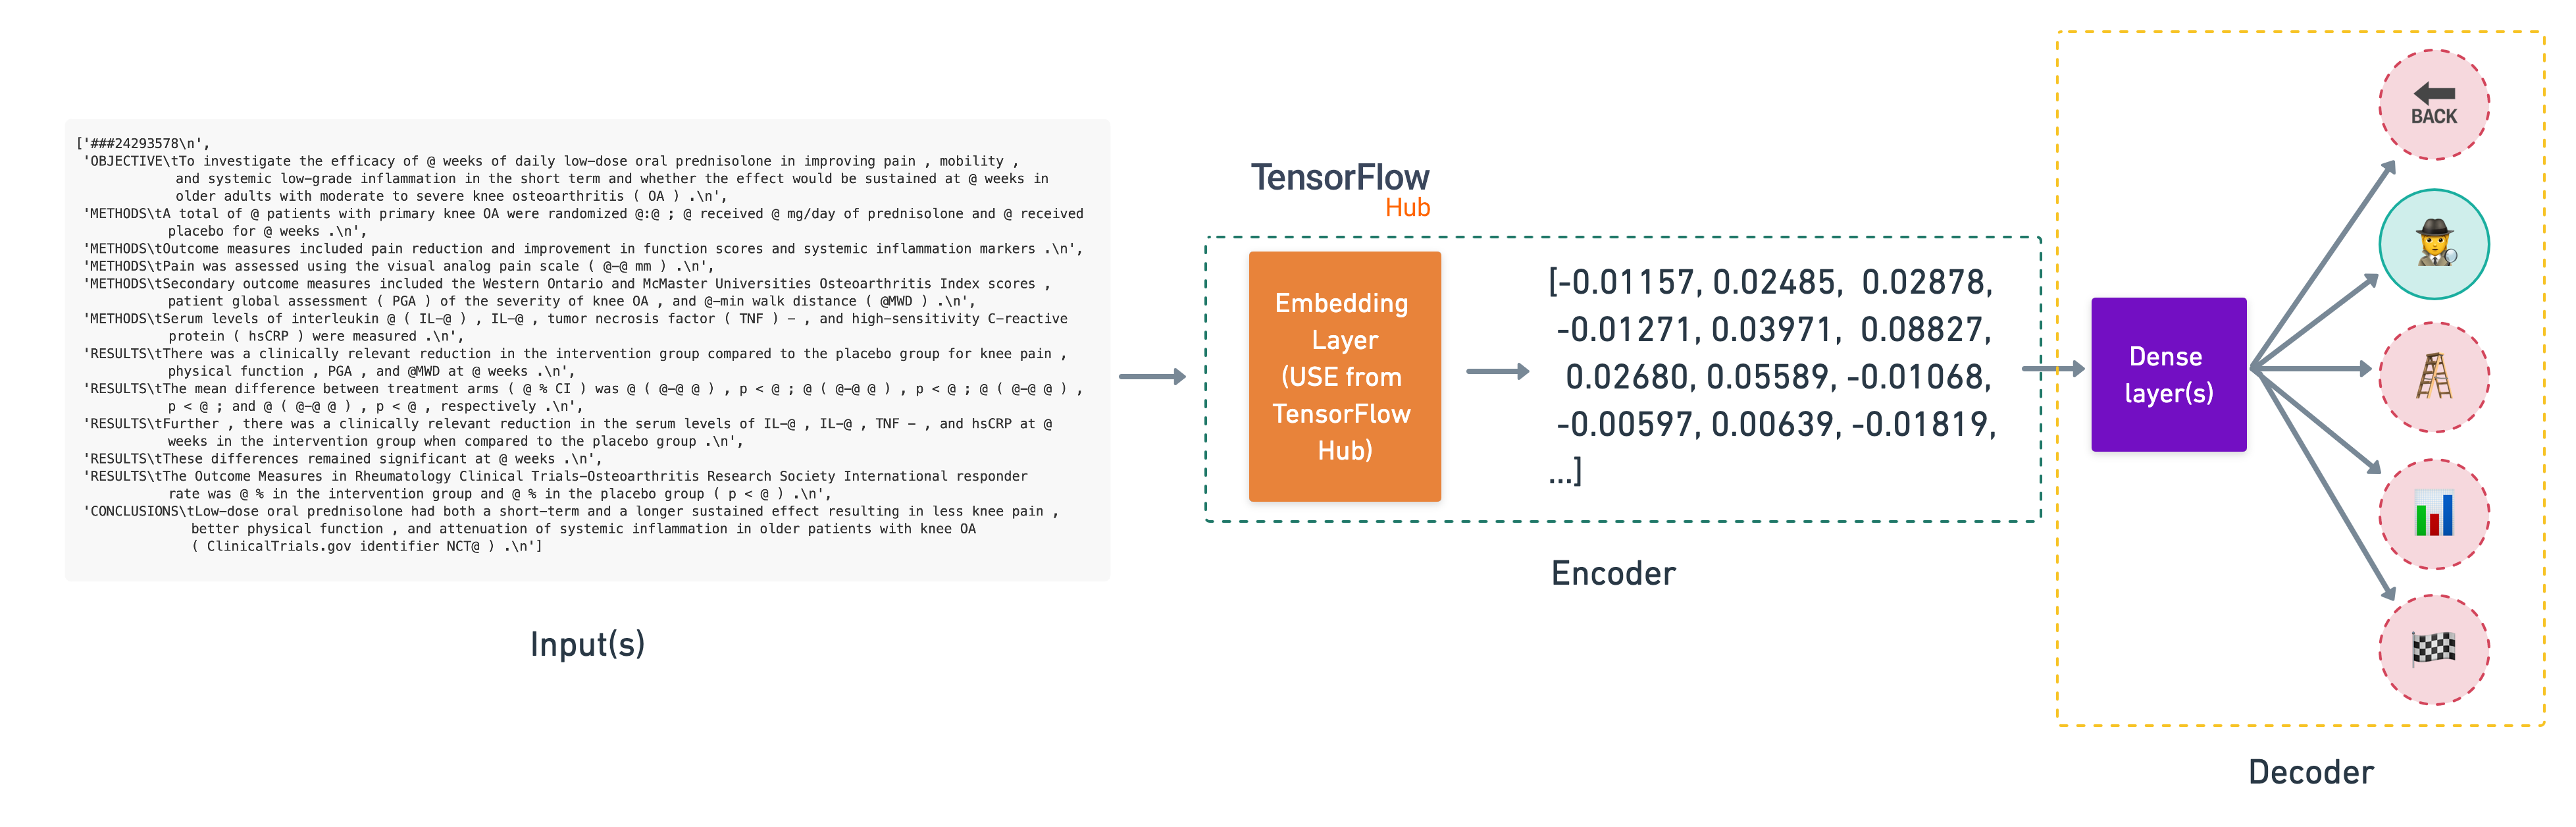 TensorFlow Hub Universal Feature Encoder feature extractor model we're building